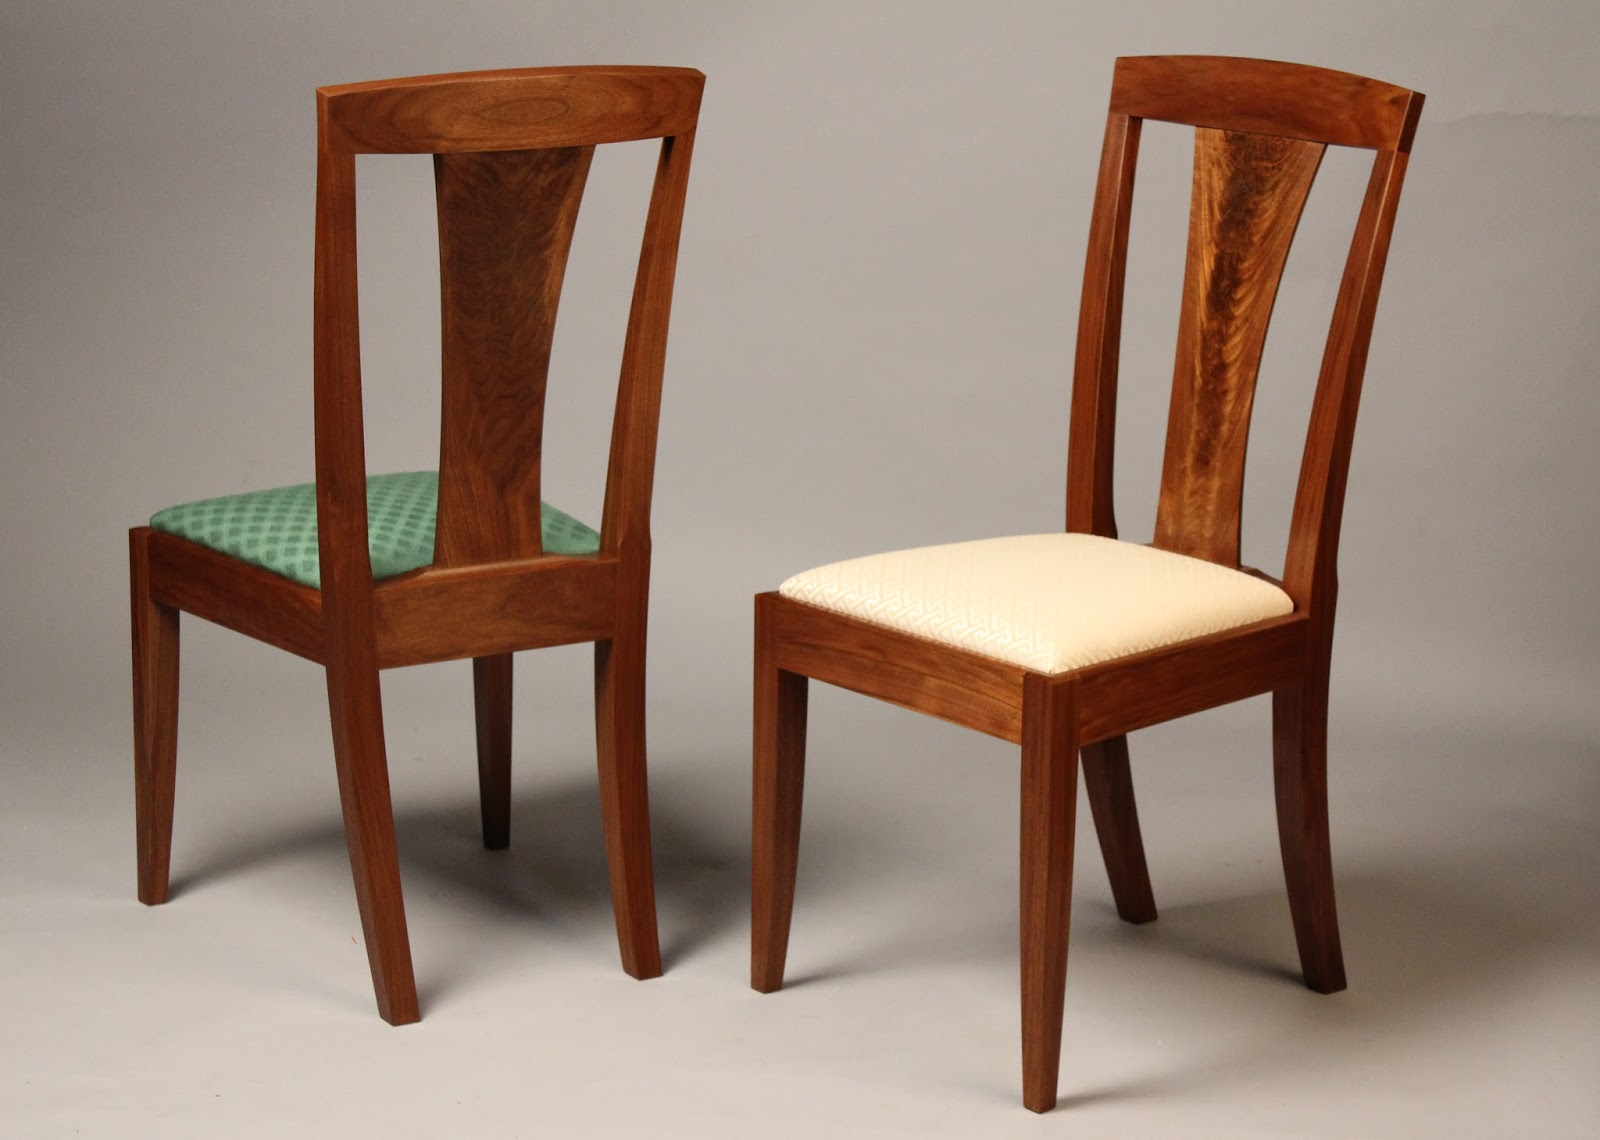 Chair maker matthew wolfe